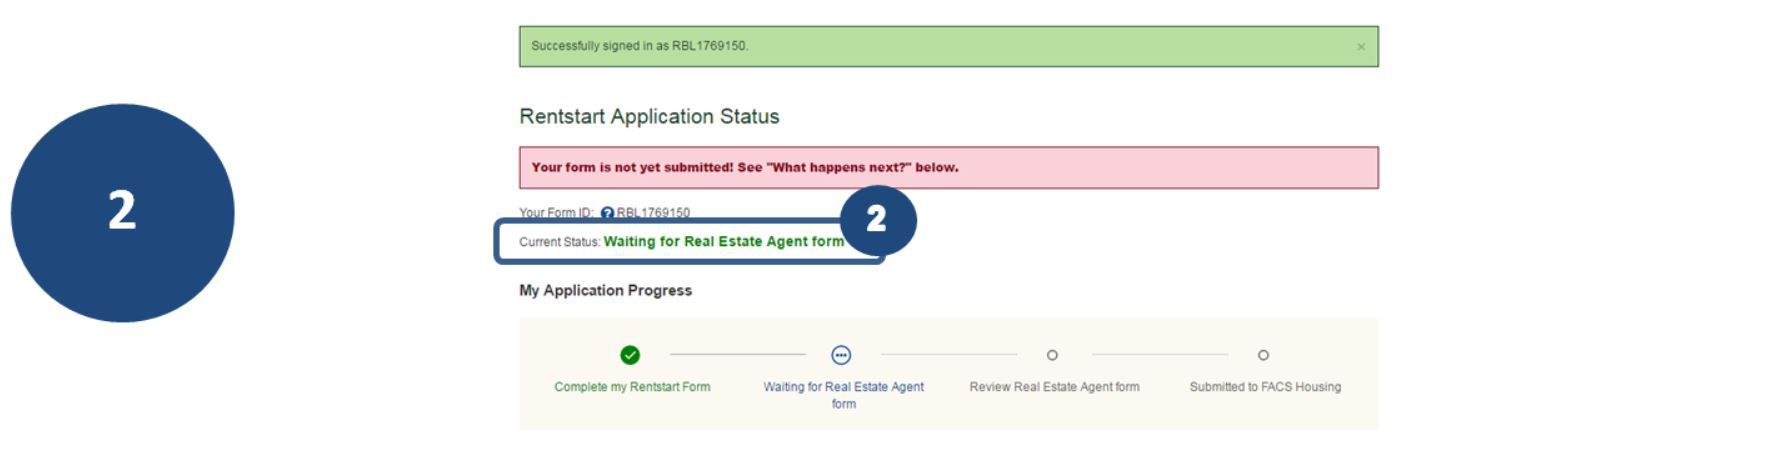 2. If your application status is Waiting for the Property Information form